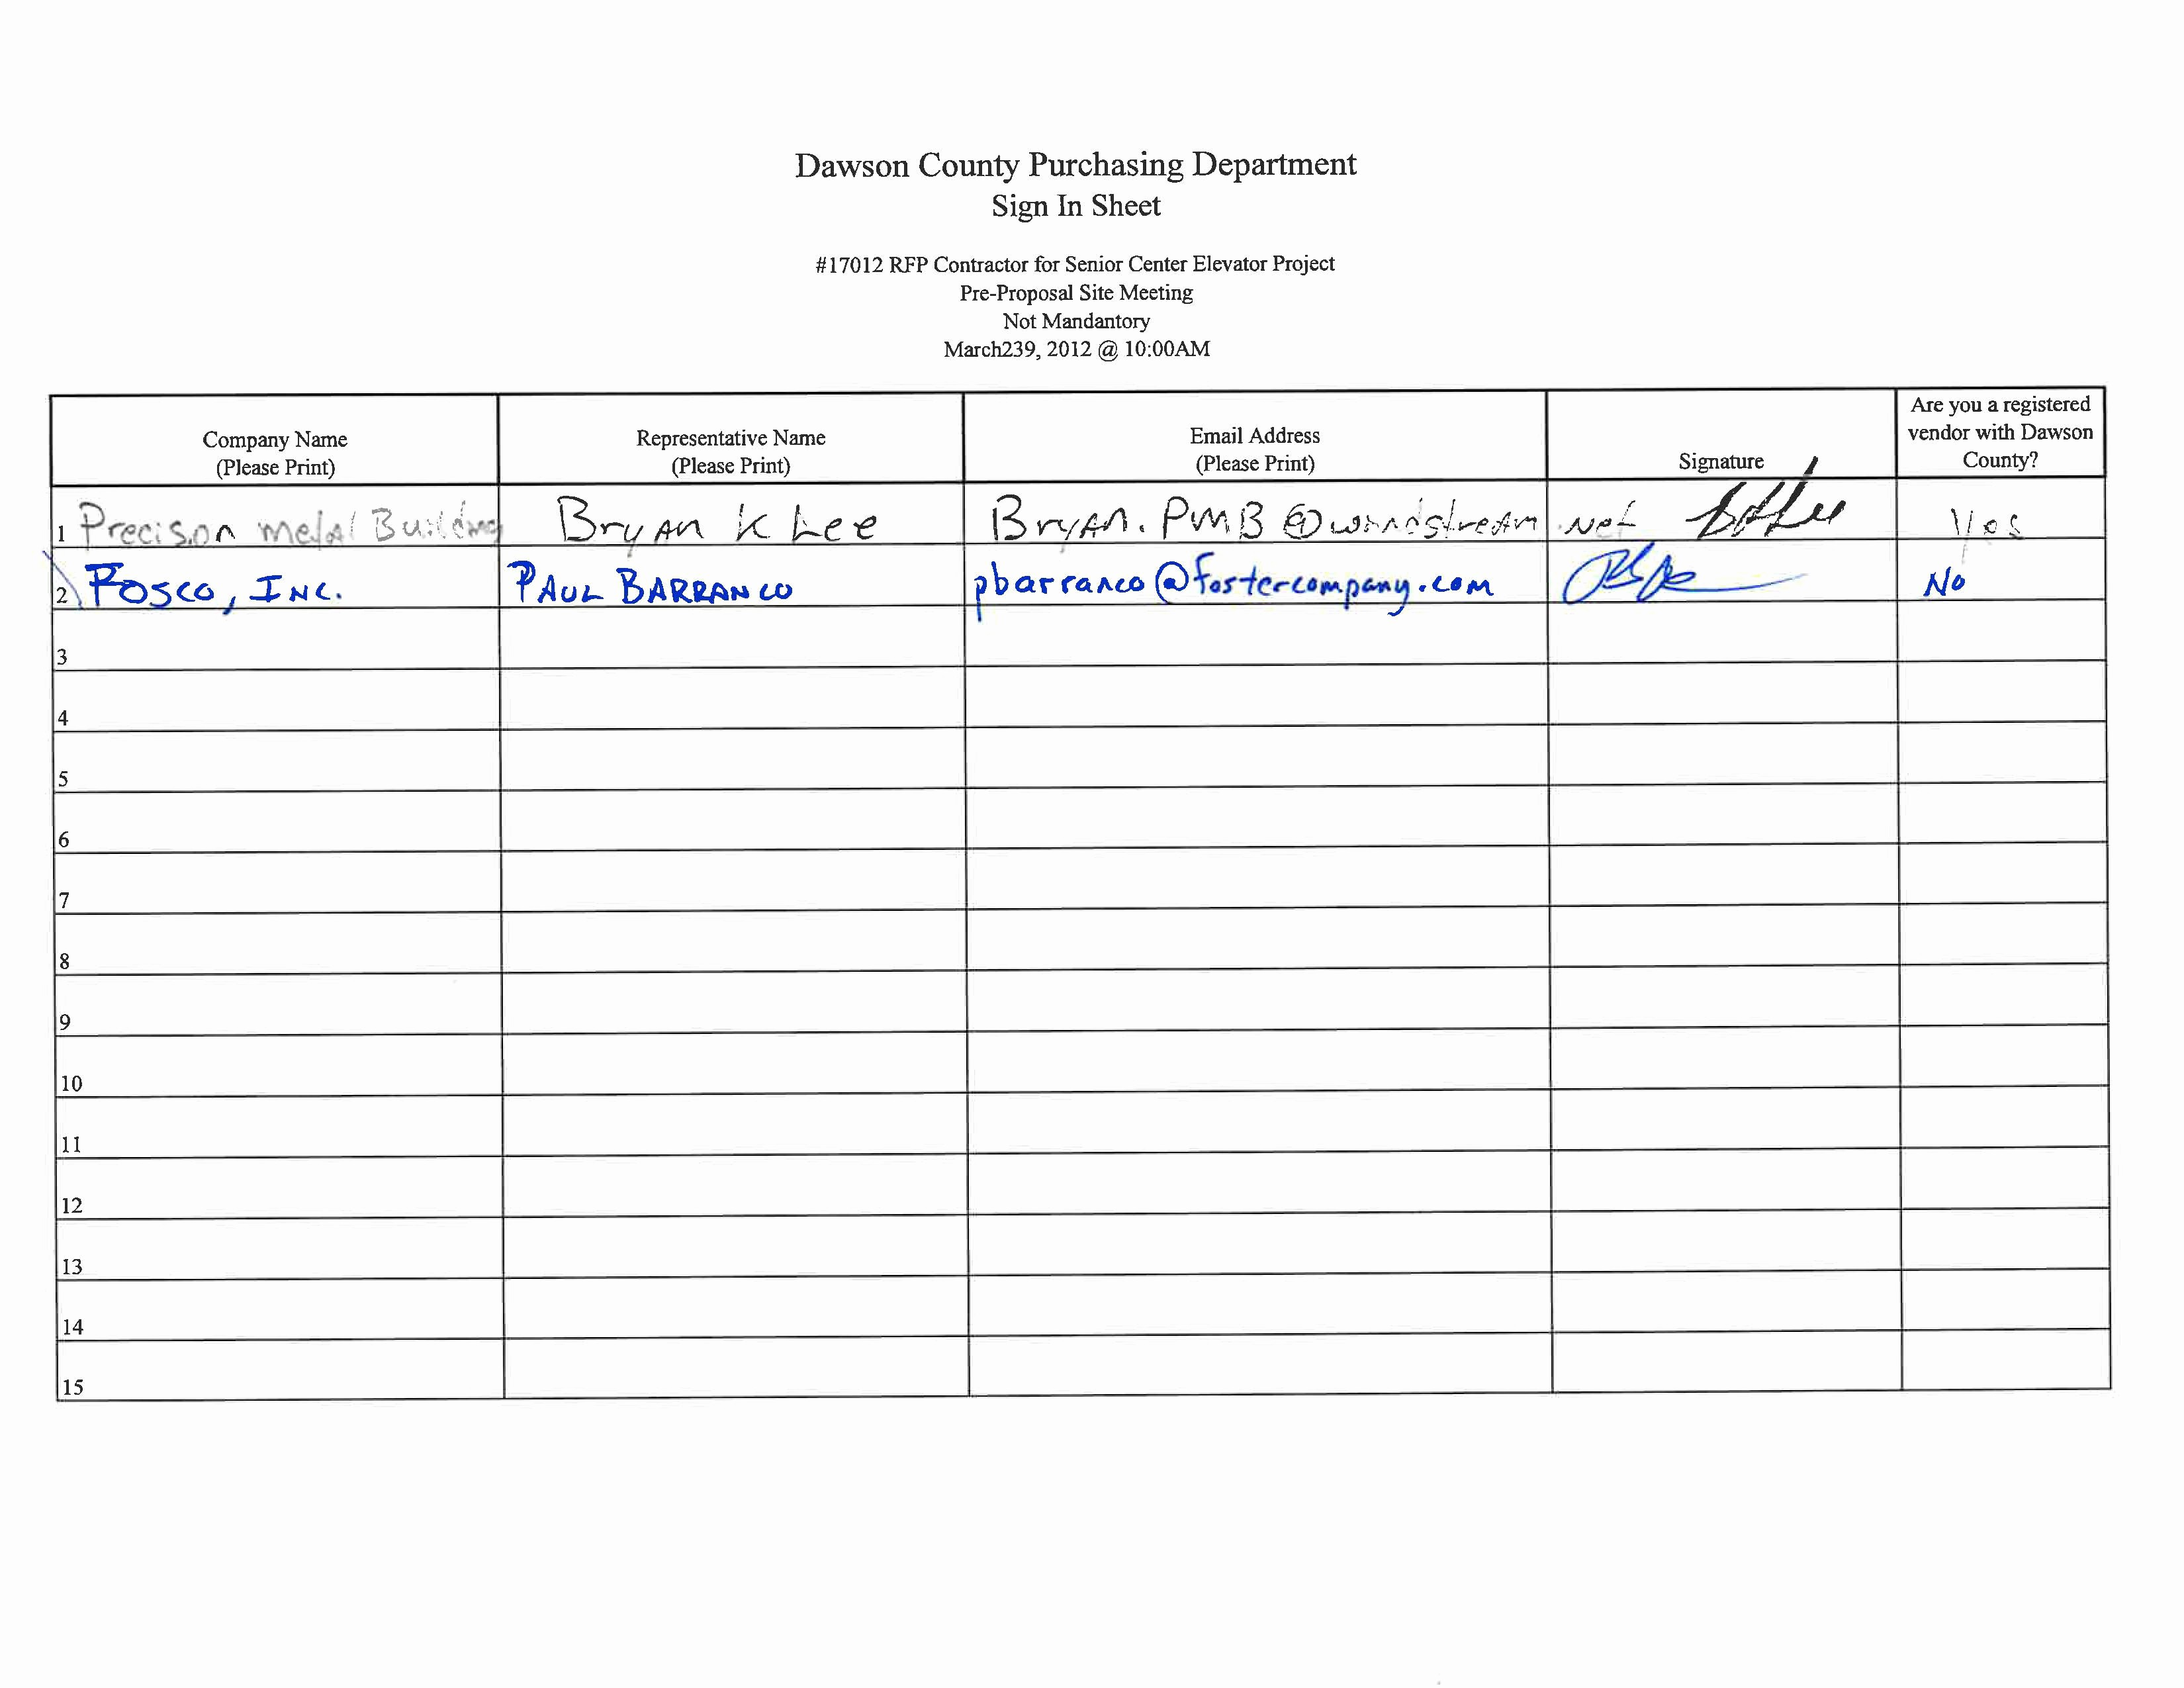 Board Meeting Sign In Sheet Luxury 170 12 Rfp Contractor for Senior Center Elevator Project